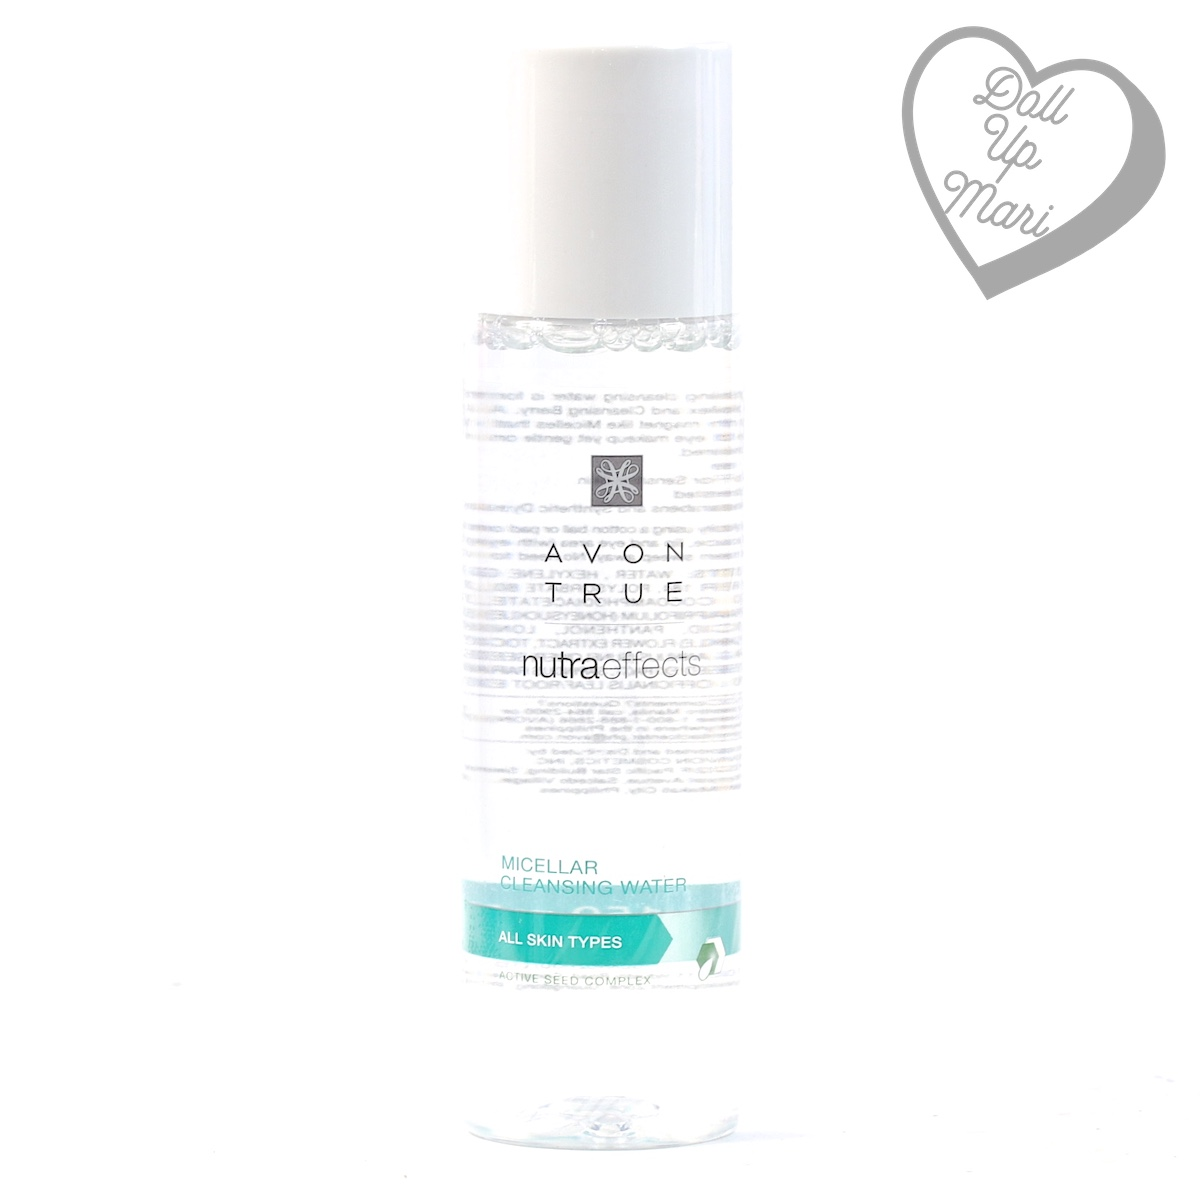 AVON True NutraEffects Micellar Cleansing Water